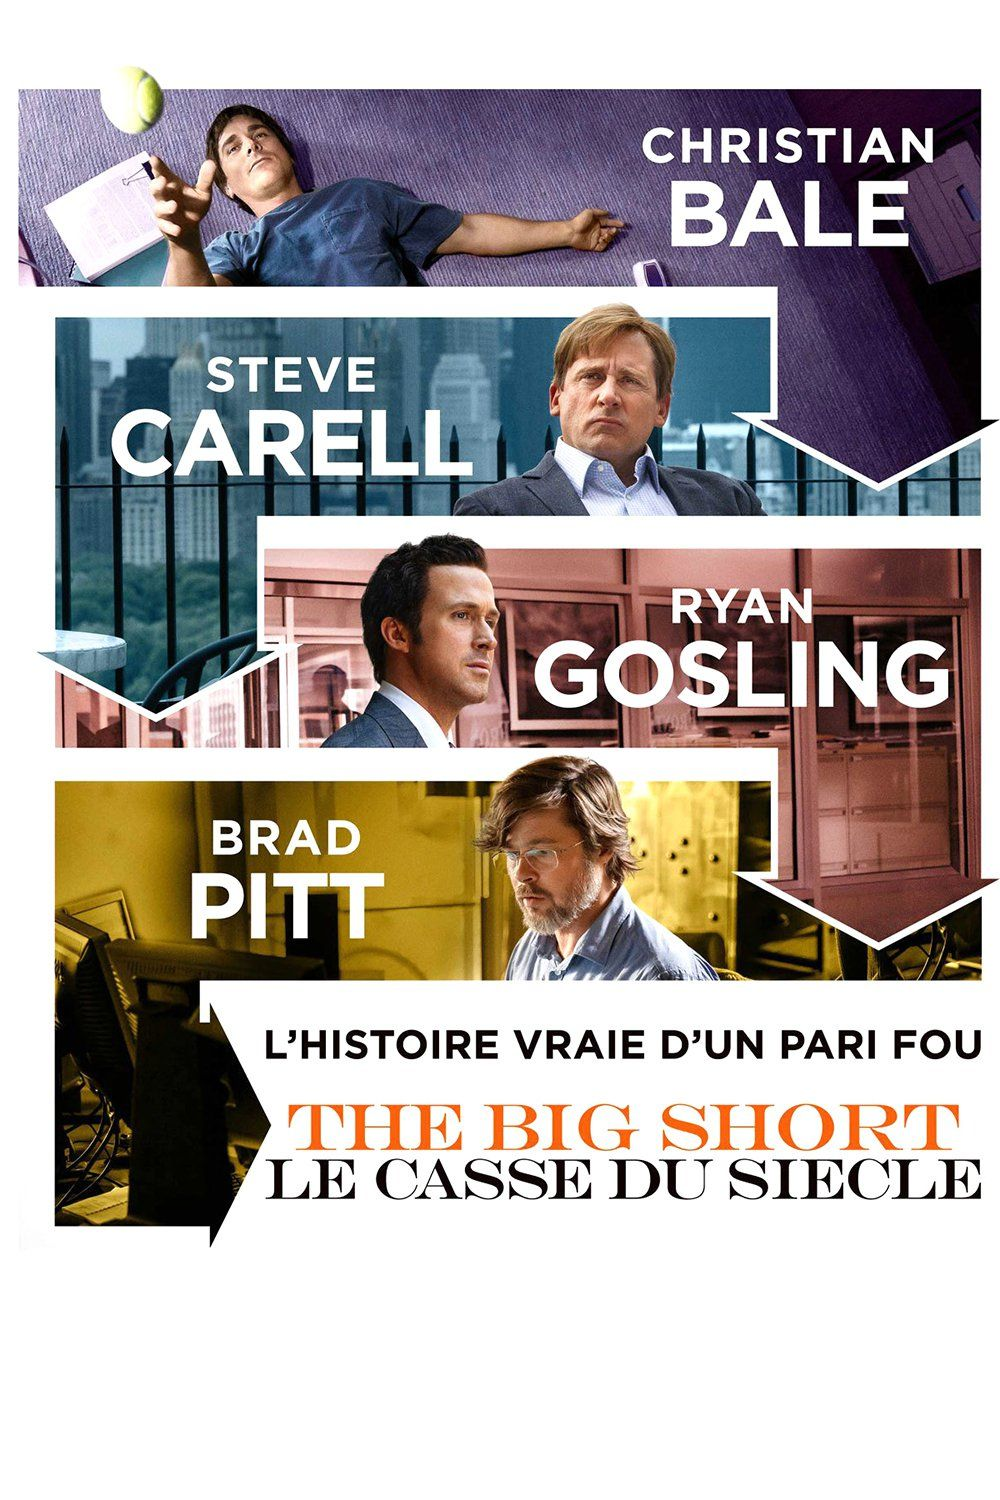 Le Pari Film Streaming Vf Gratuit : streaming, gratuit, Short, Casse, Siècle, (2015), Streaming,, Complet, Youwatch, FILMSTREAMING-HD.COM, Short,, Movie,, Movies, Online